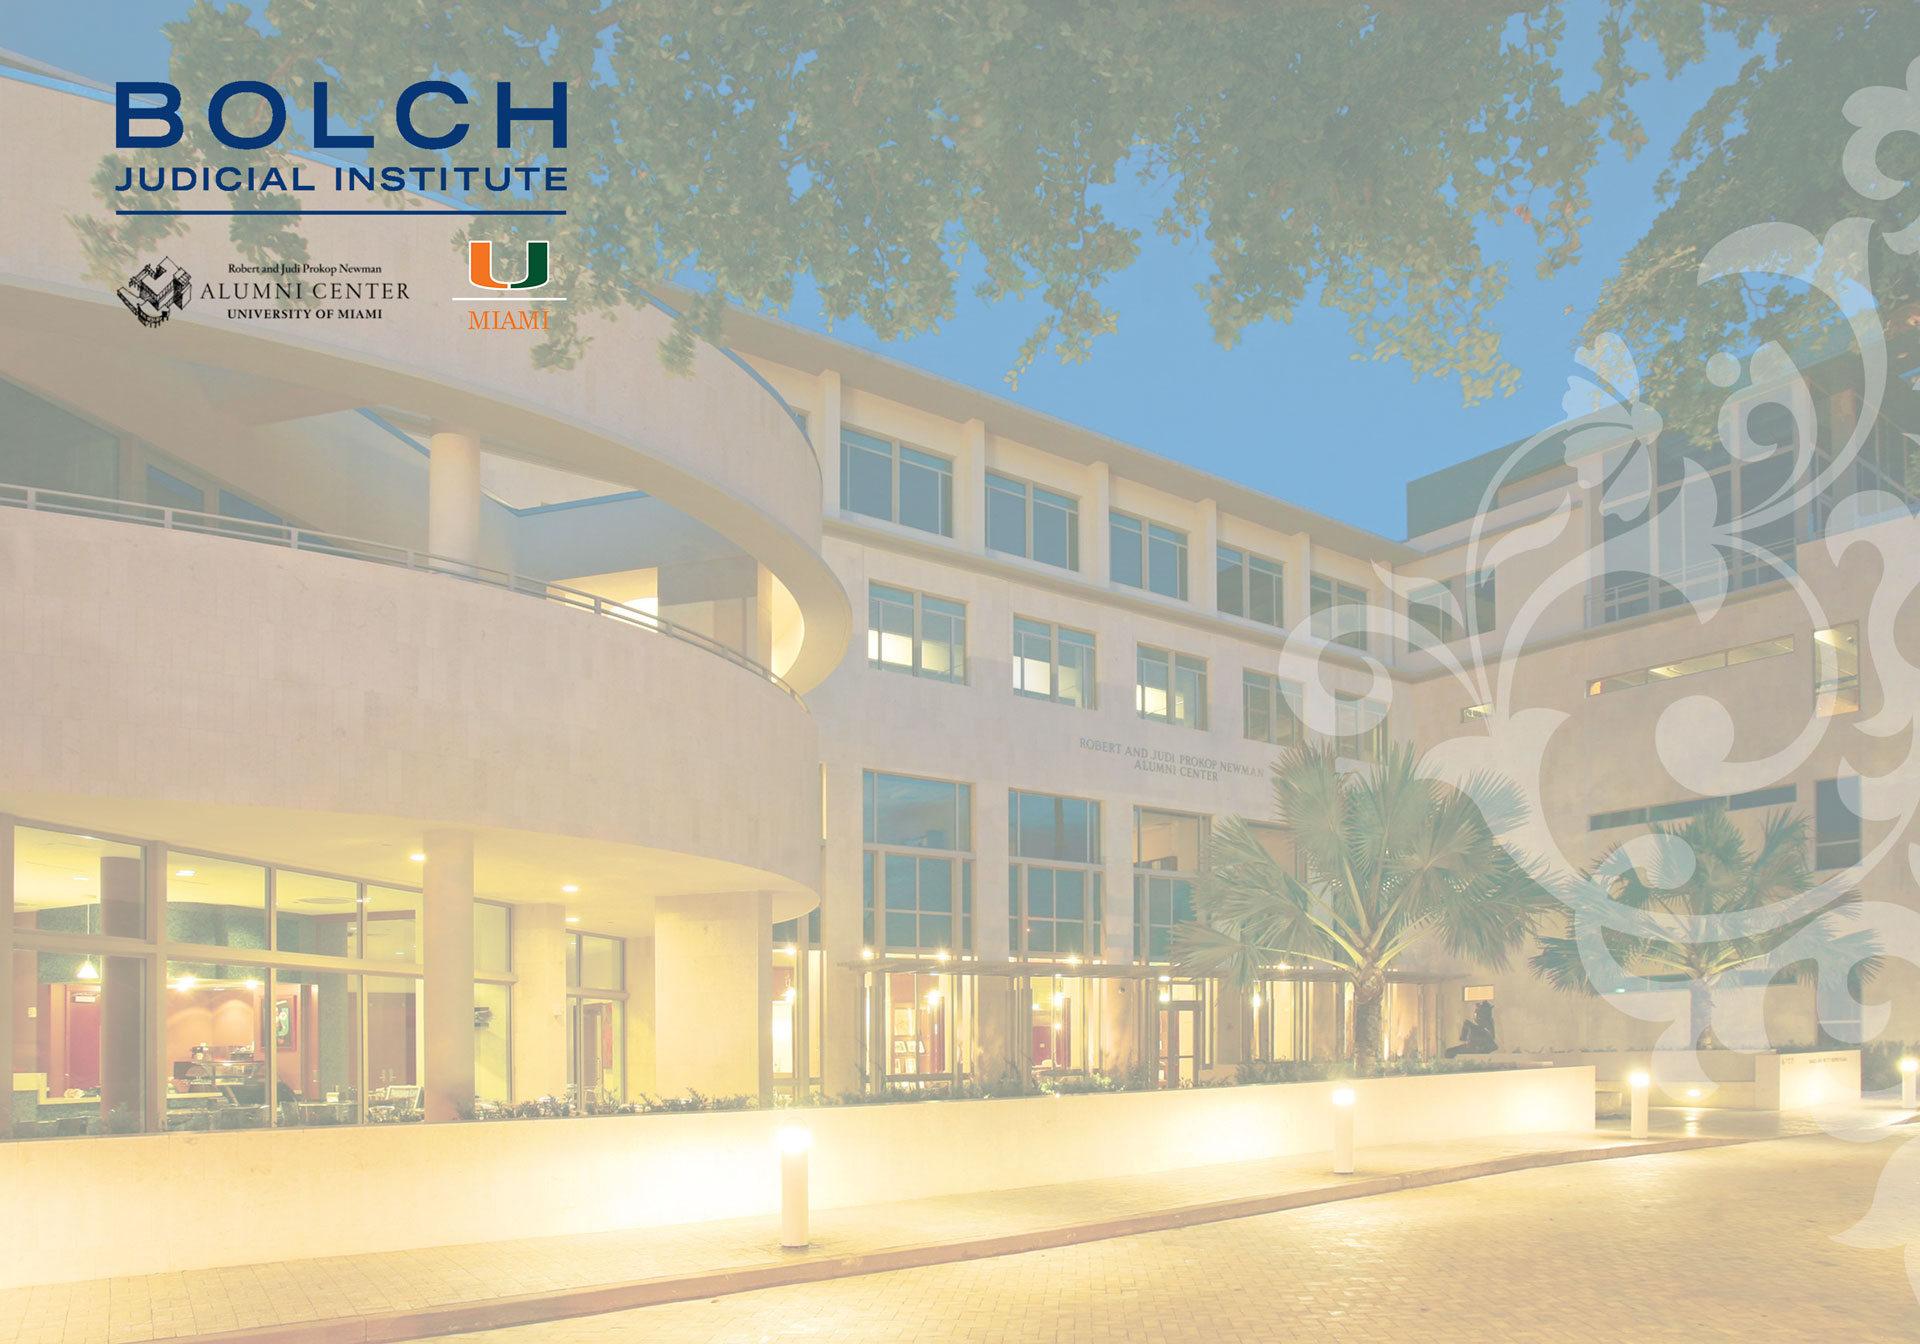 bolch-judicial-institute-event-on-substance-abuse-in-legal-profession-at-um.jpg